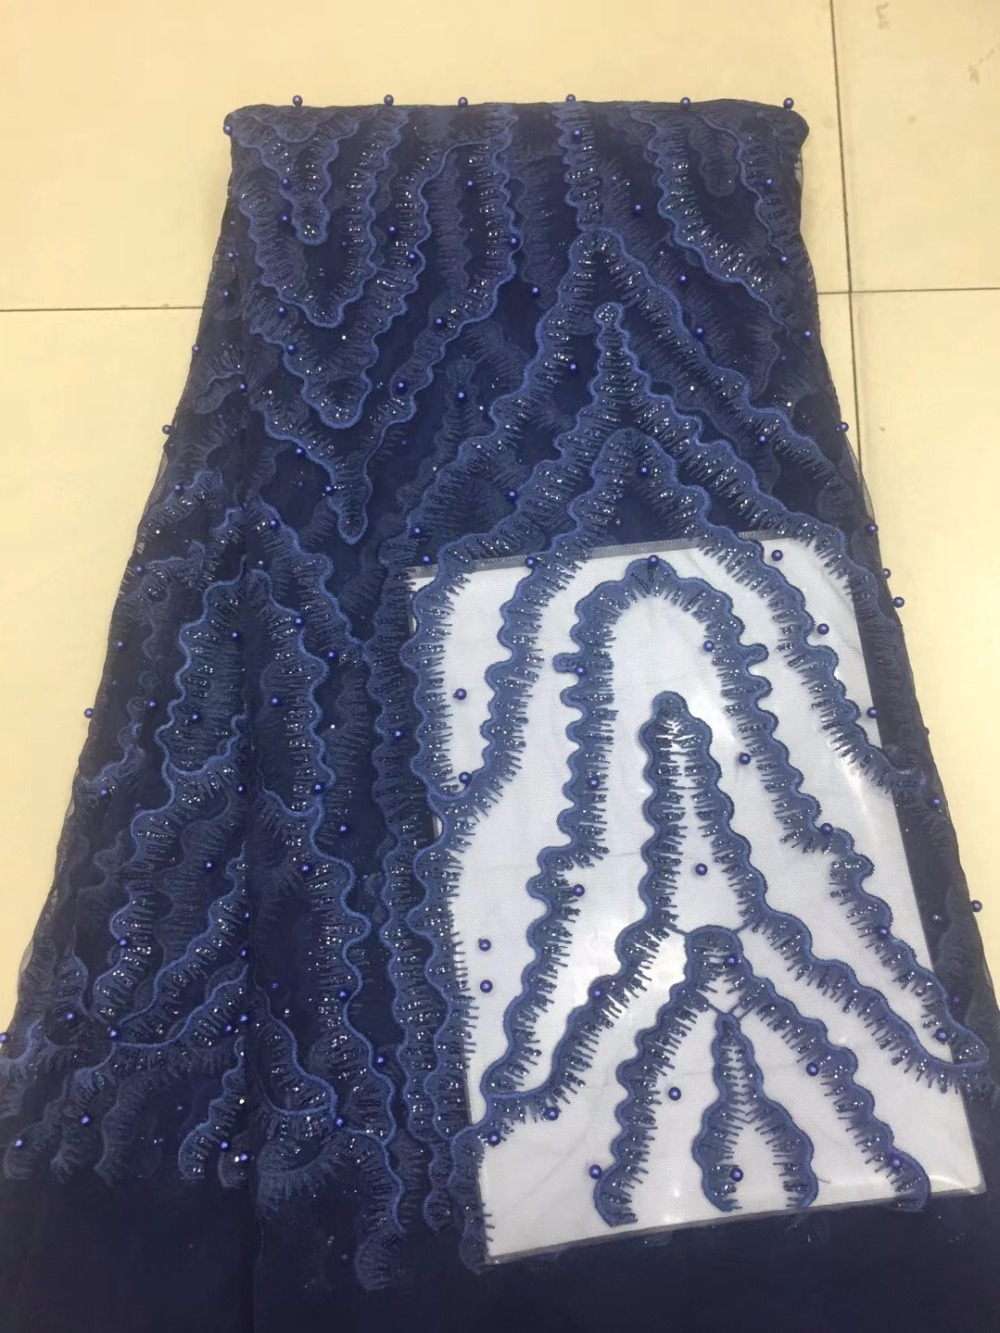 Nigerian Lace Fabric 2018 High Quality Lace Lace Fabric Beautiful beads Lace For African Wedding DressNigerian Lace Fabric 2018 High Quality Lace Lace Fabric Beautiful beads Lace For African Wedding Dress